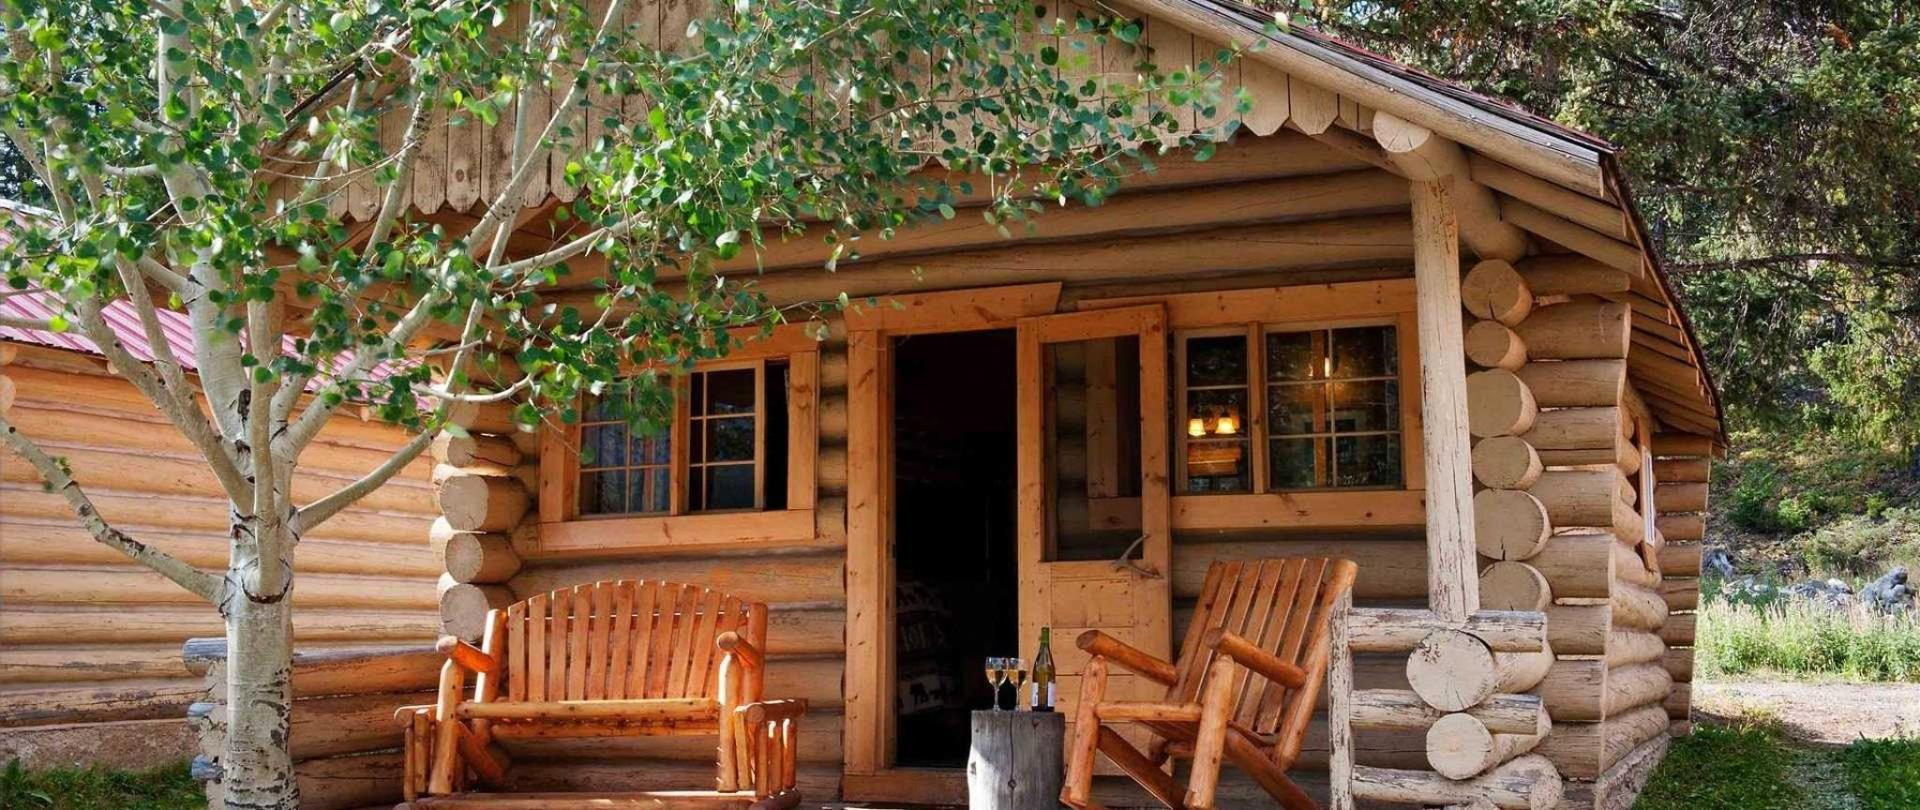 cabin sale rent yellowstone rentals near houses snowmobile in cabins activities montana mt west for